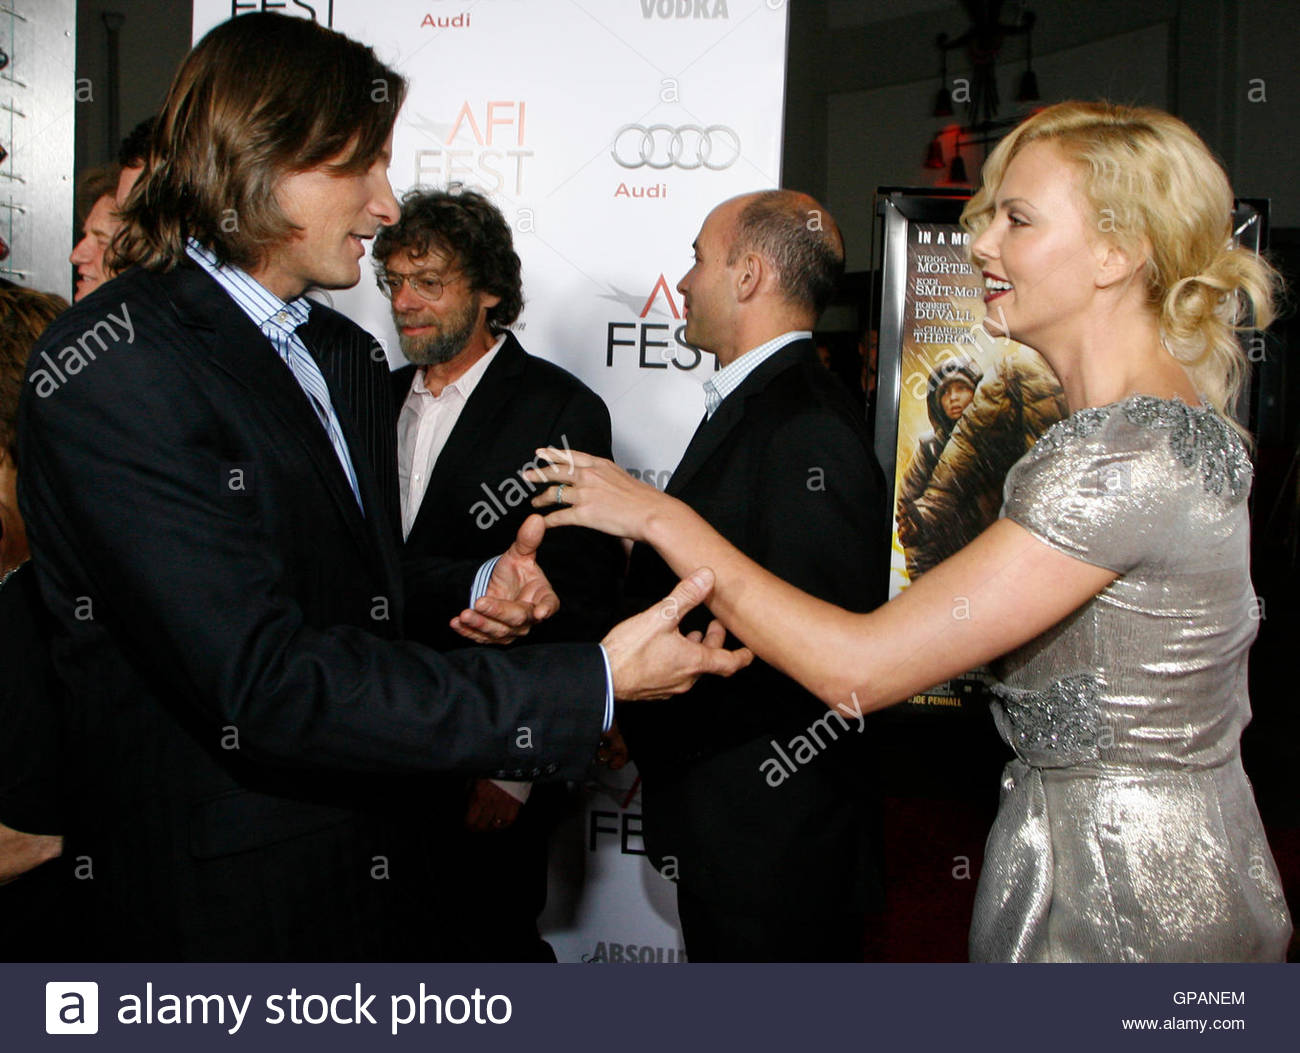 l r actor danny stock photos l r actor danny stock images alamy actor viggo mortensen l and south african actress charlize theron r attend